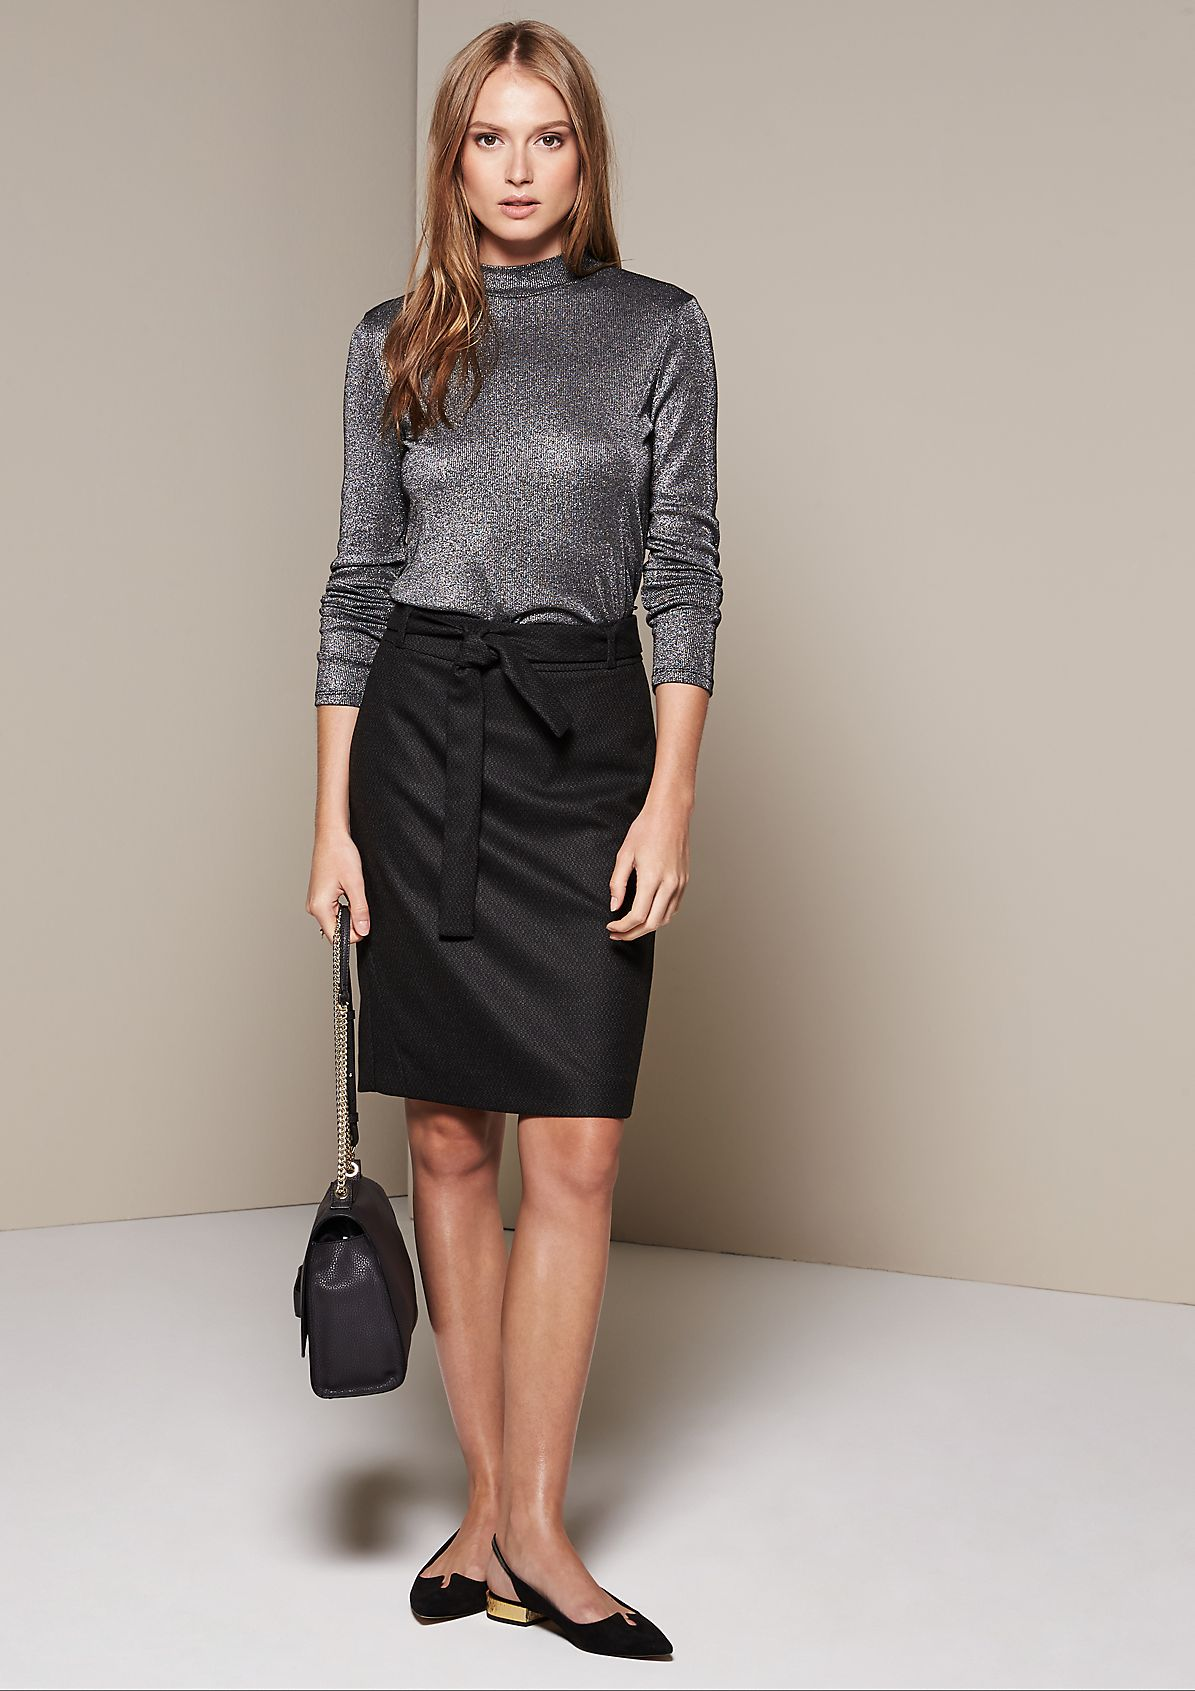 Exciting business skirt with a fine minimal pattern from s.Oliver